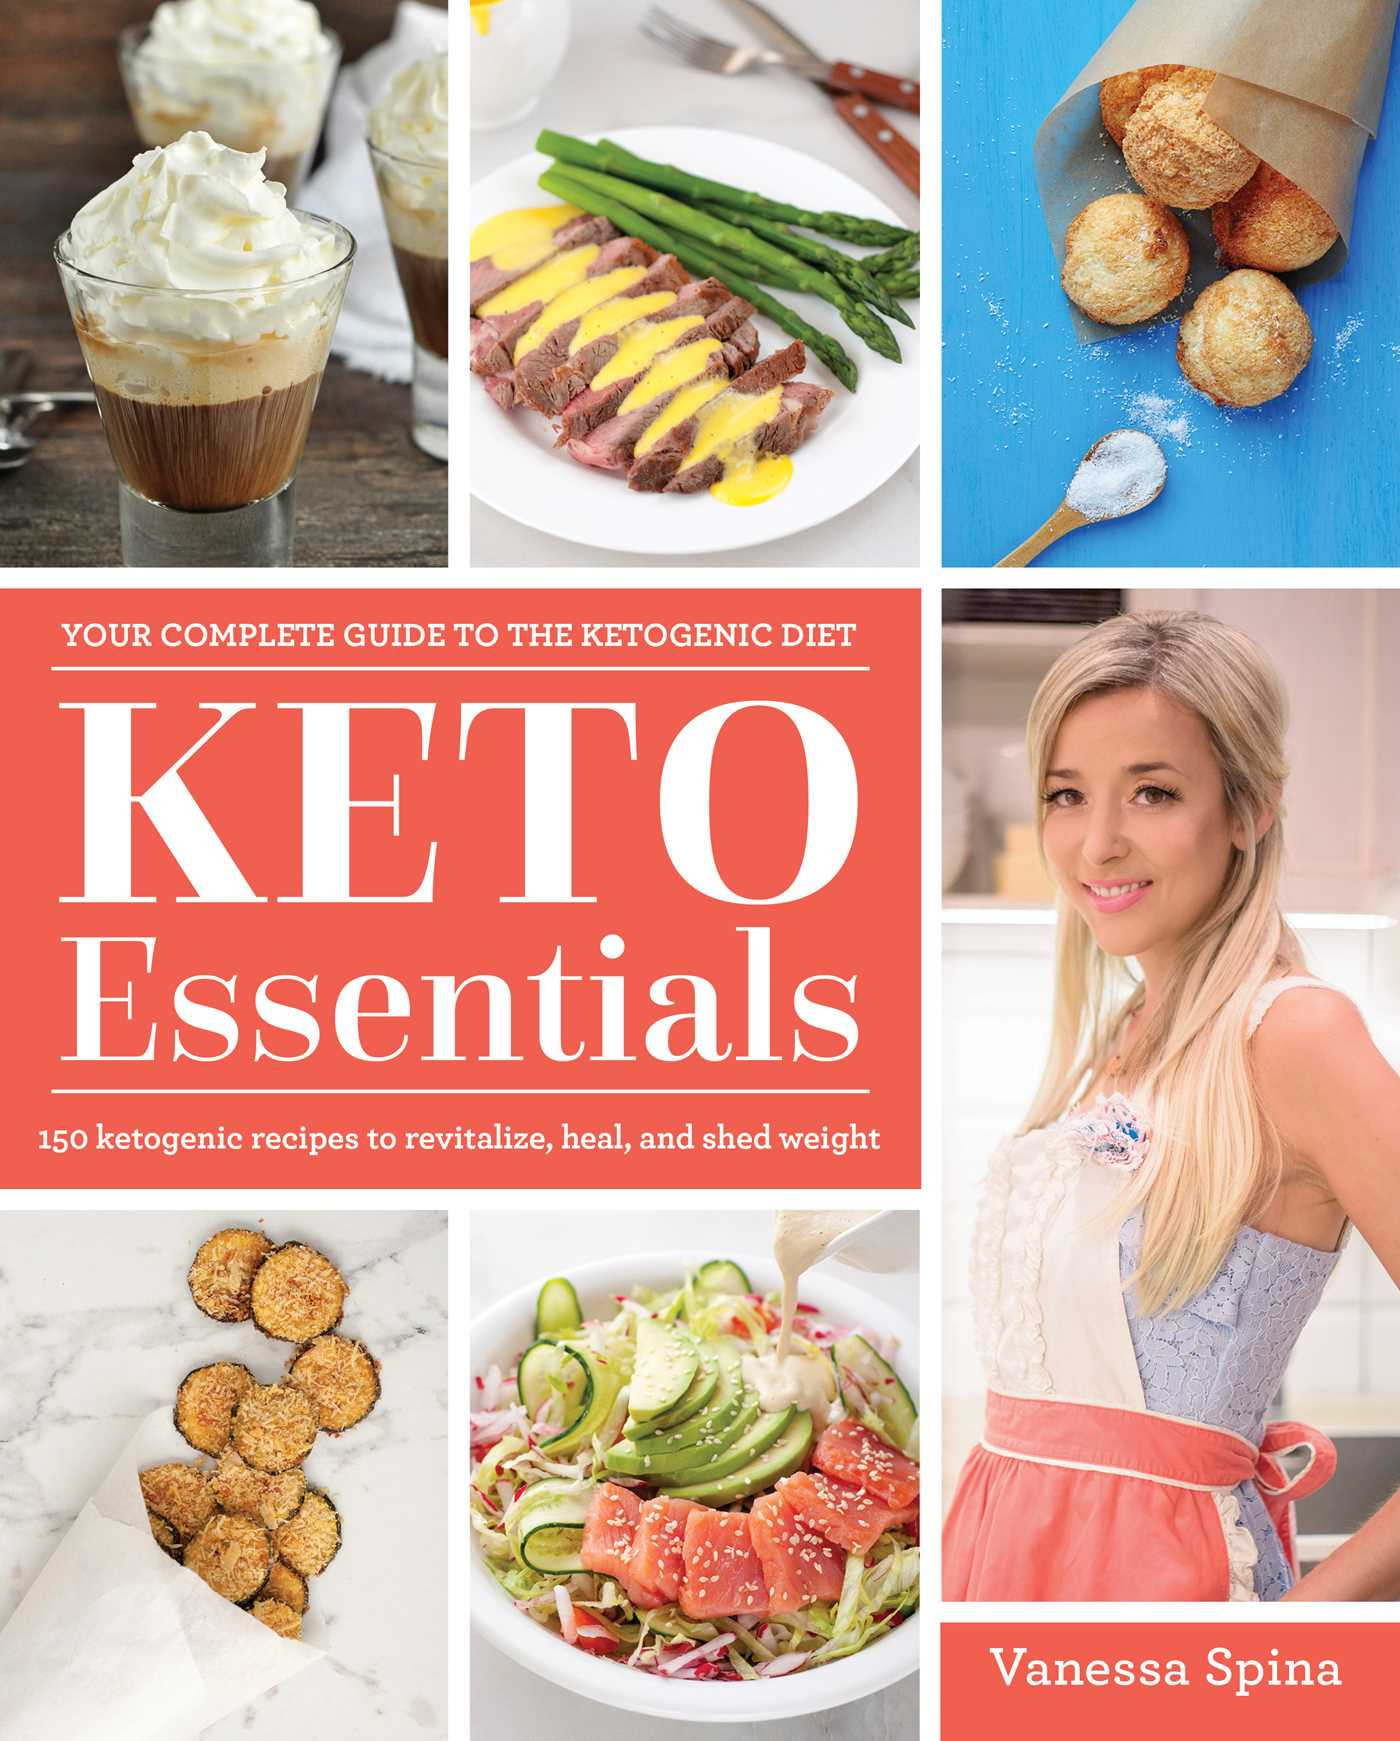 Keto essentials 9781628602647 hr